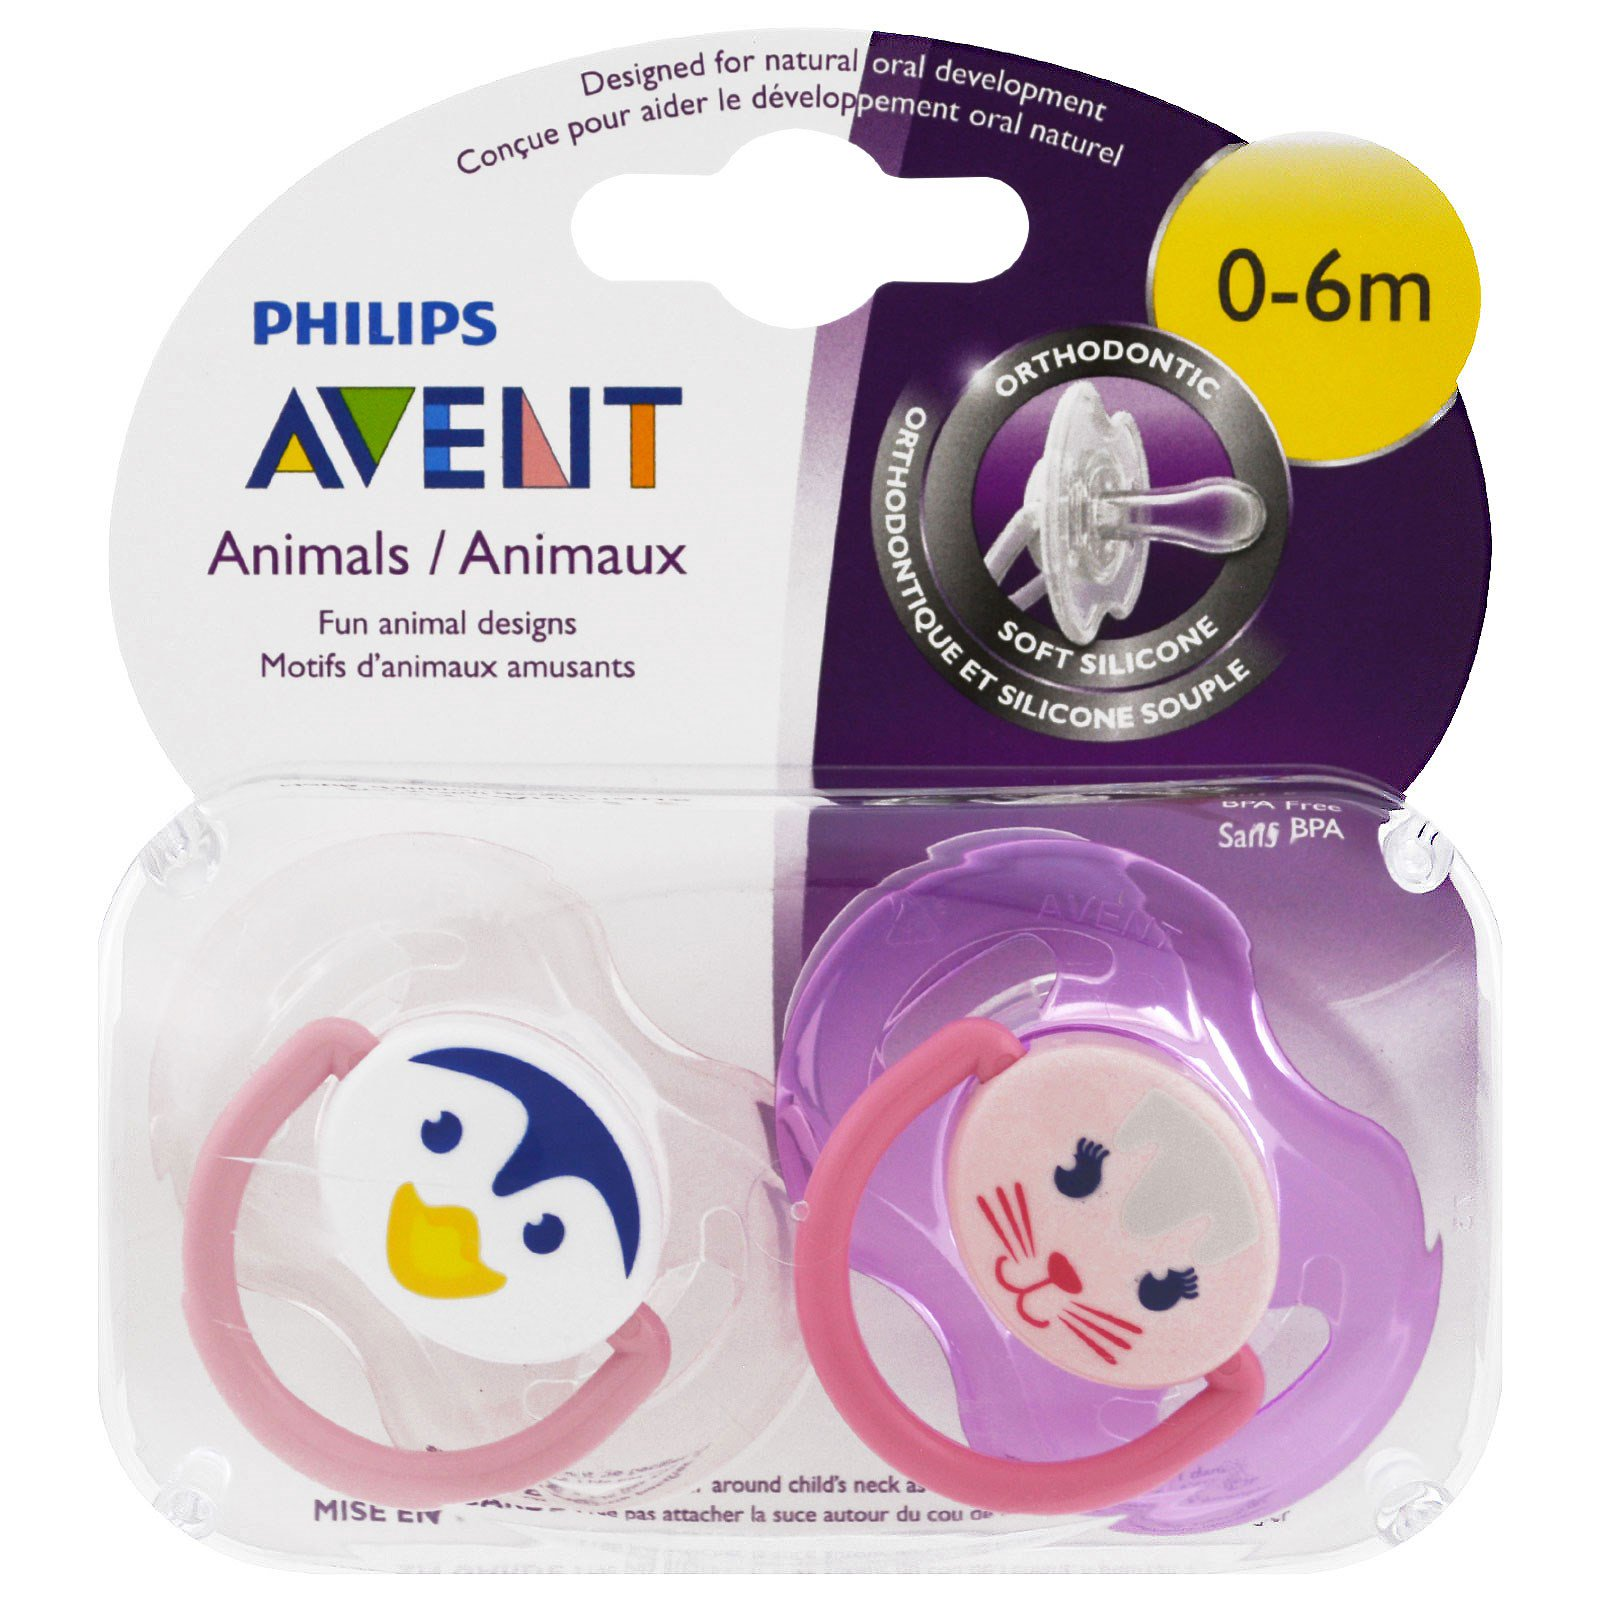 Philips Avent Orthodontic Soft Silicone Pacifier 0 6